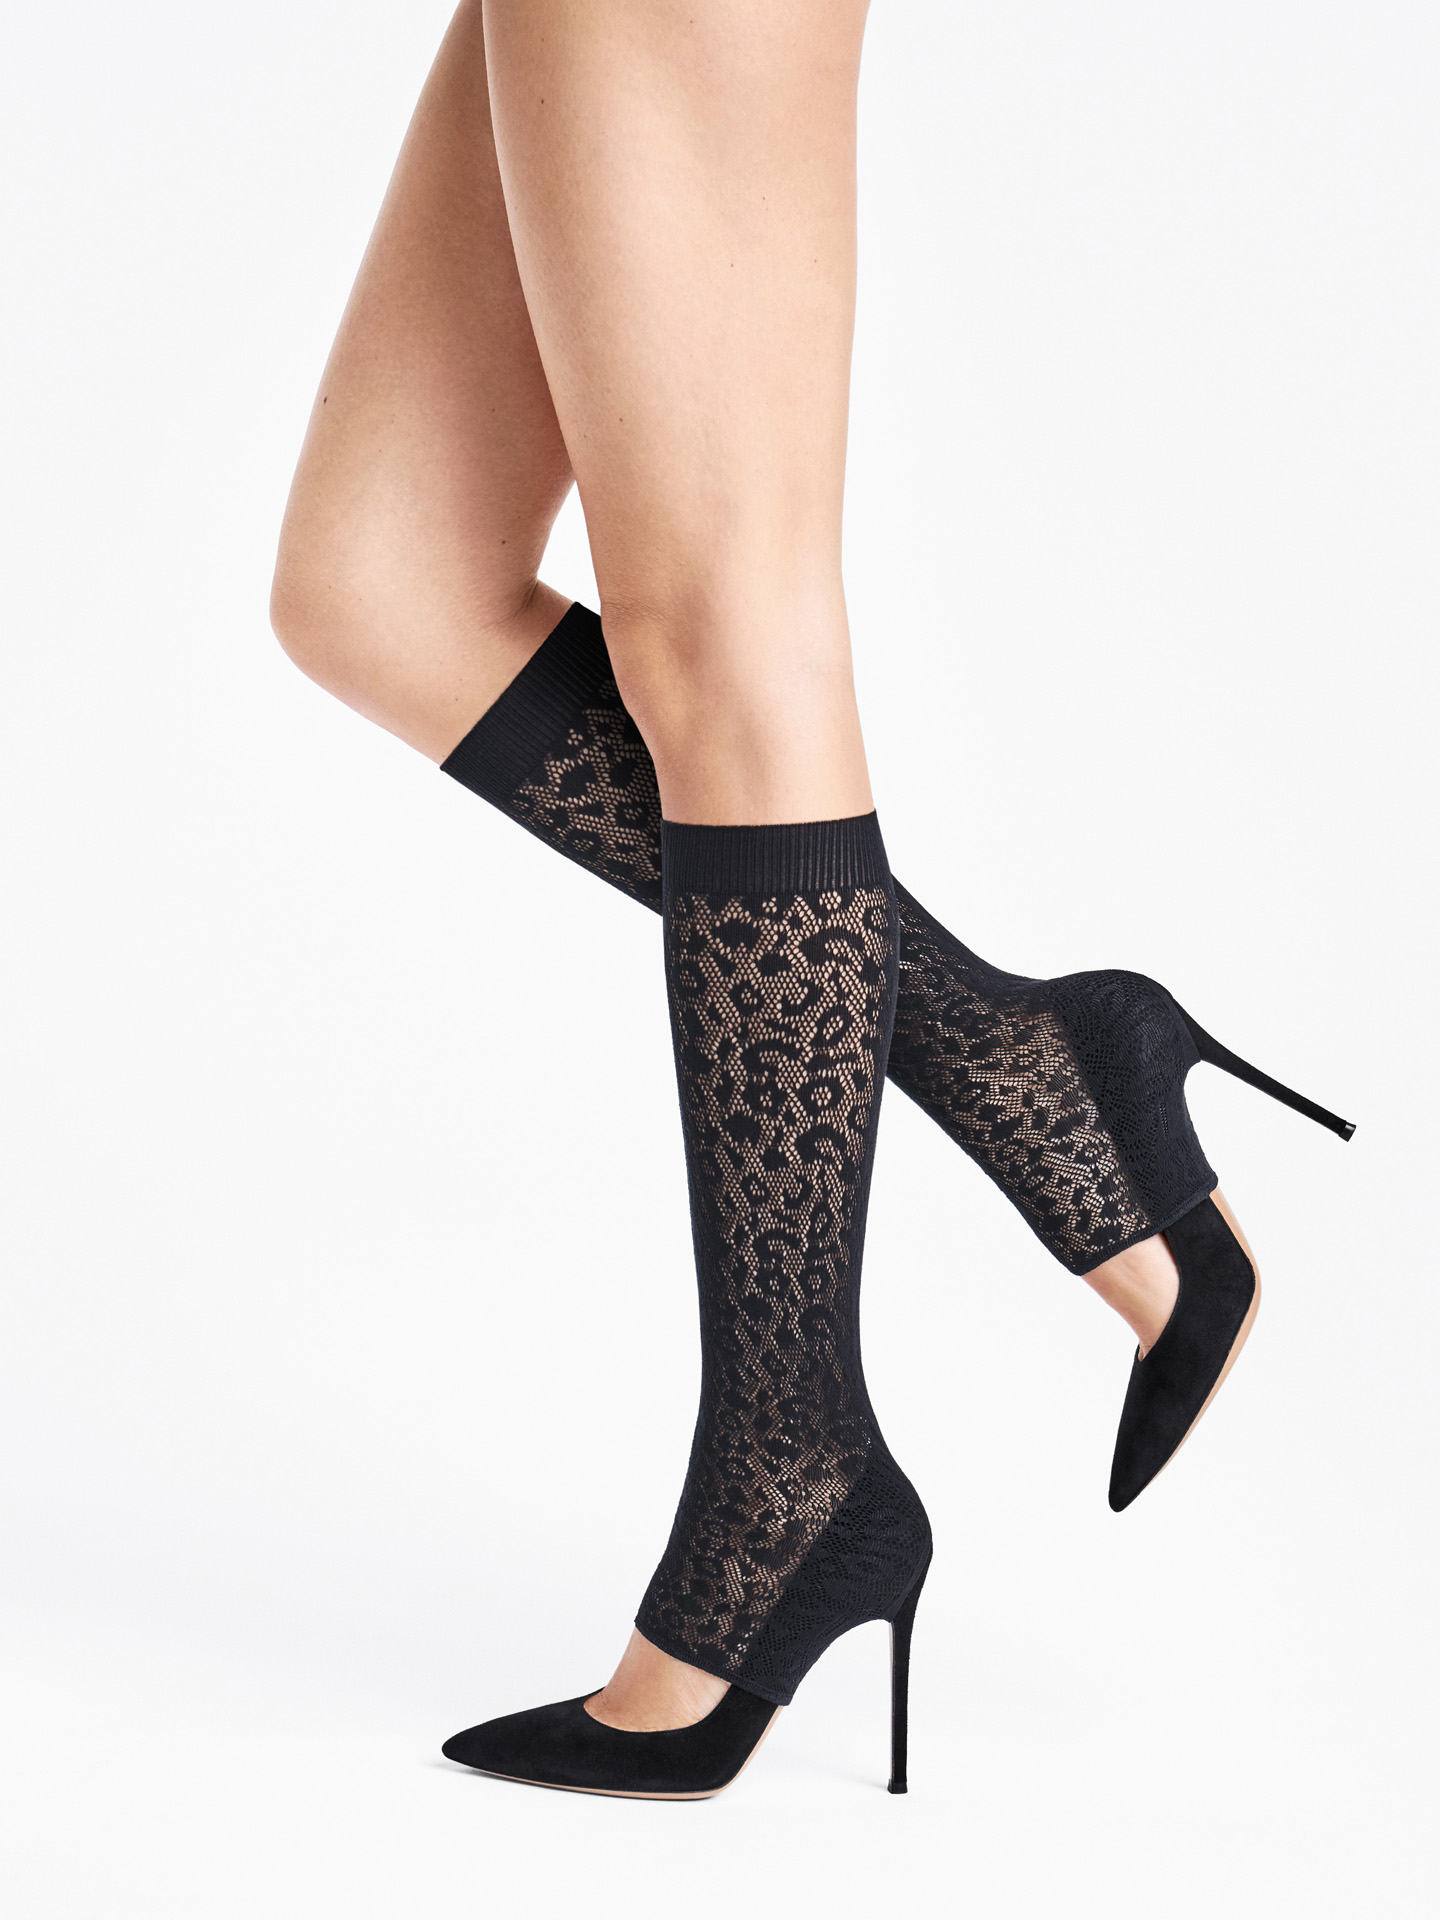 Cheetah Net Overheel Knee-High O